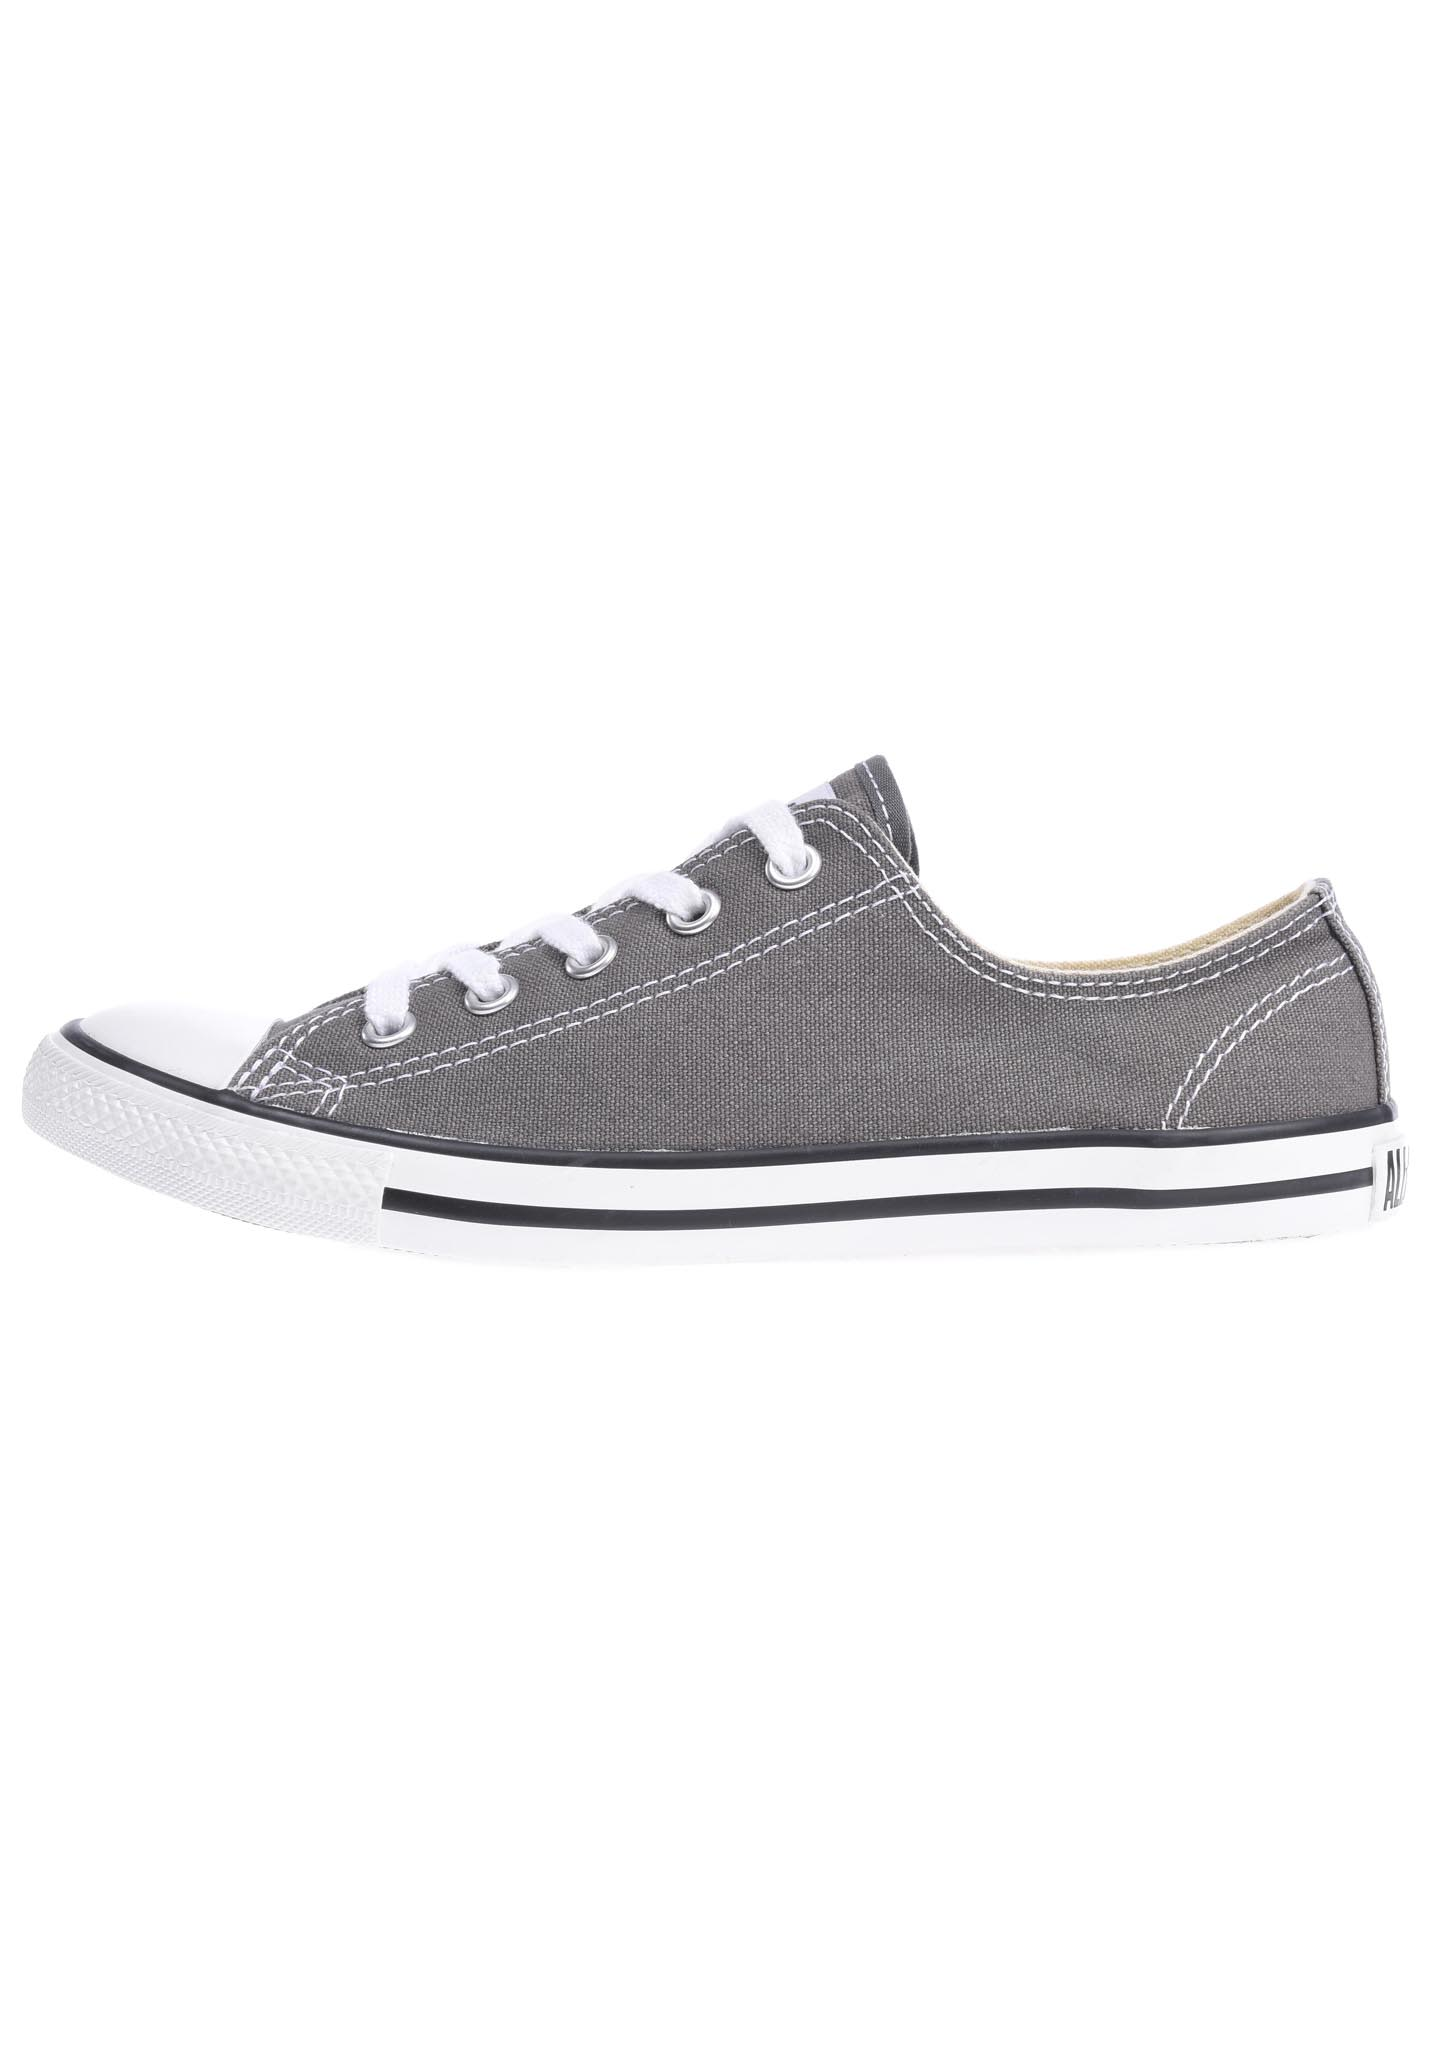 365fcf8e208 Converse Chuck Taylor All Star Dainty Ox - Sneakers voor Dames - Grijs -  Planet Sports